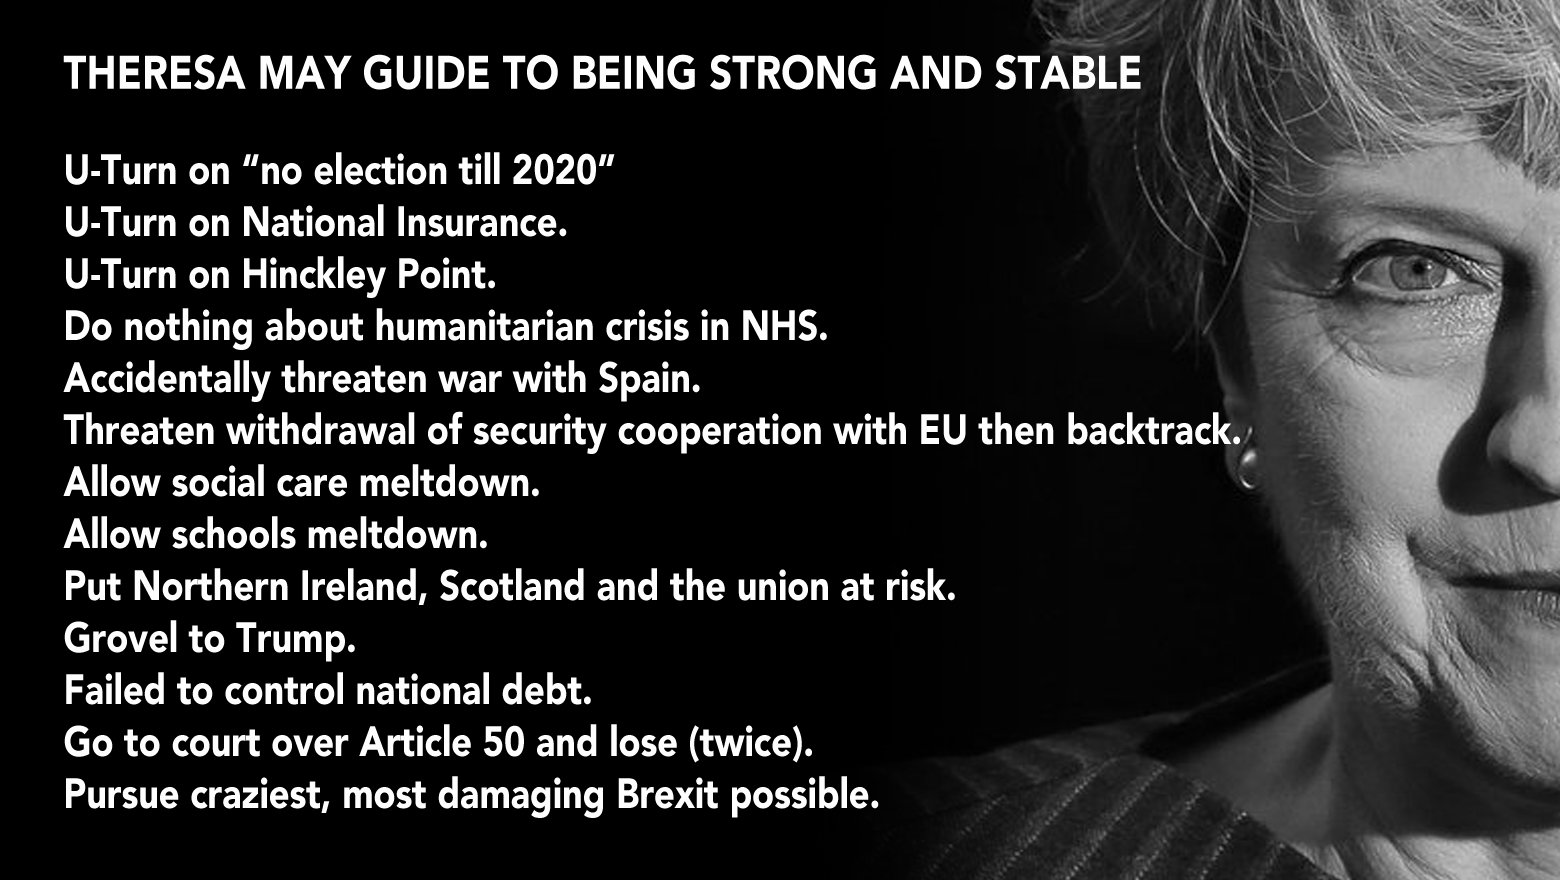 Theresa May's handy guide to strong and stable government. https://t.co/GZIyLXgIgD